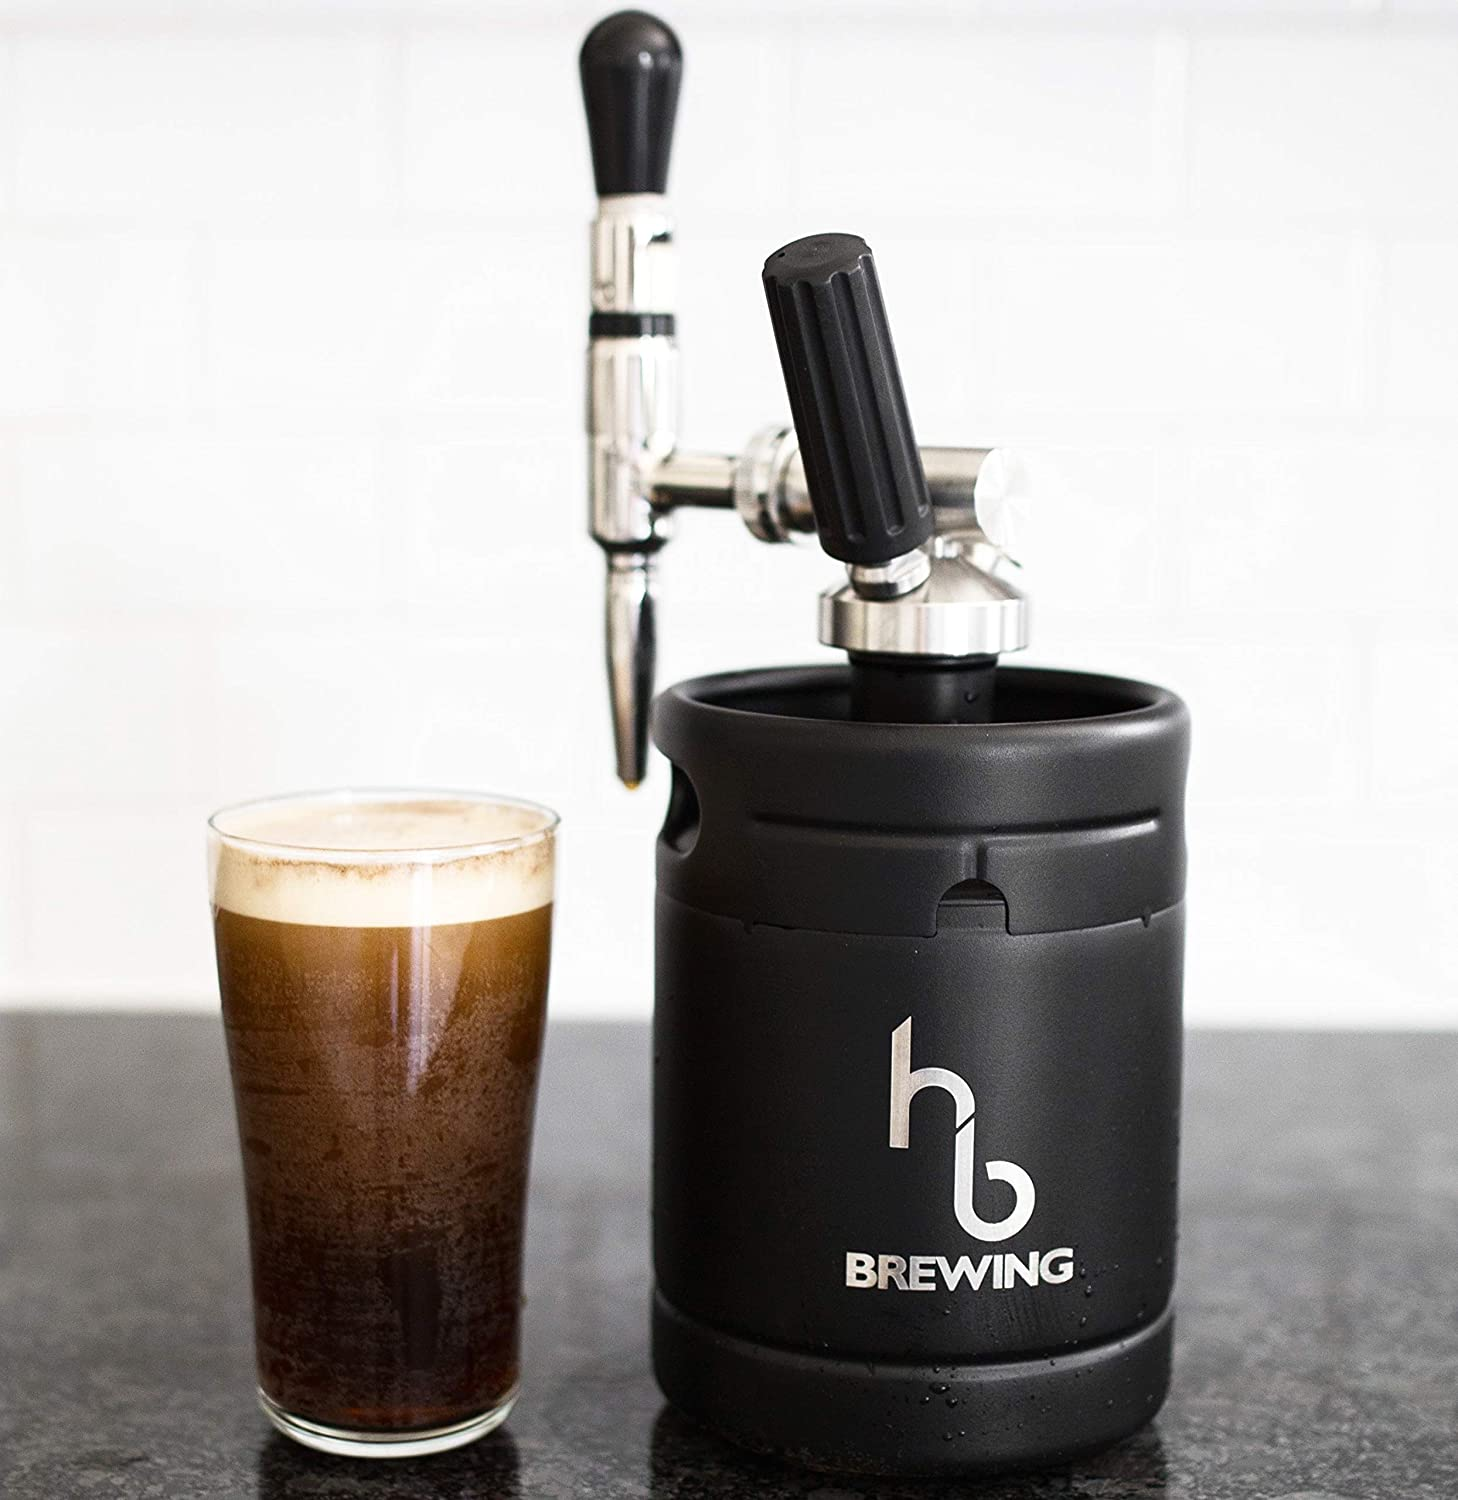 Nitro Cold Brew Coffee Maker – Mini Keg Dispensing System - Home Brew Kit - by HB Brewing